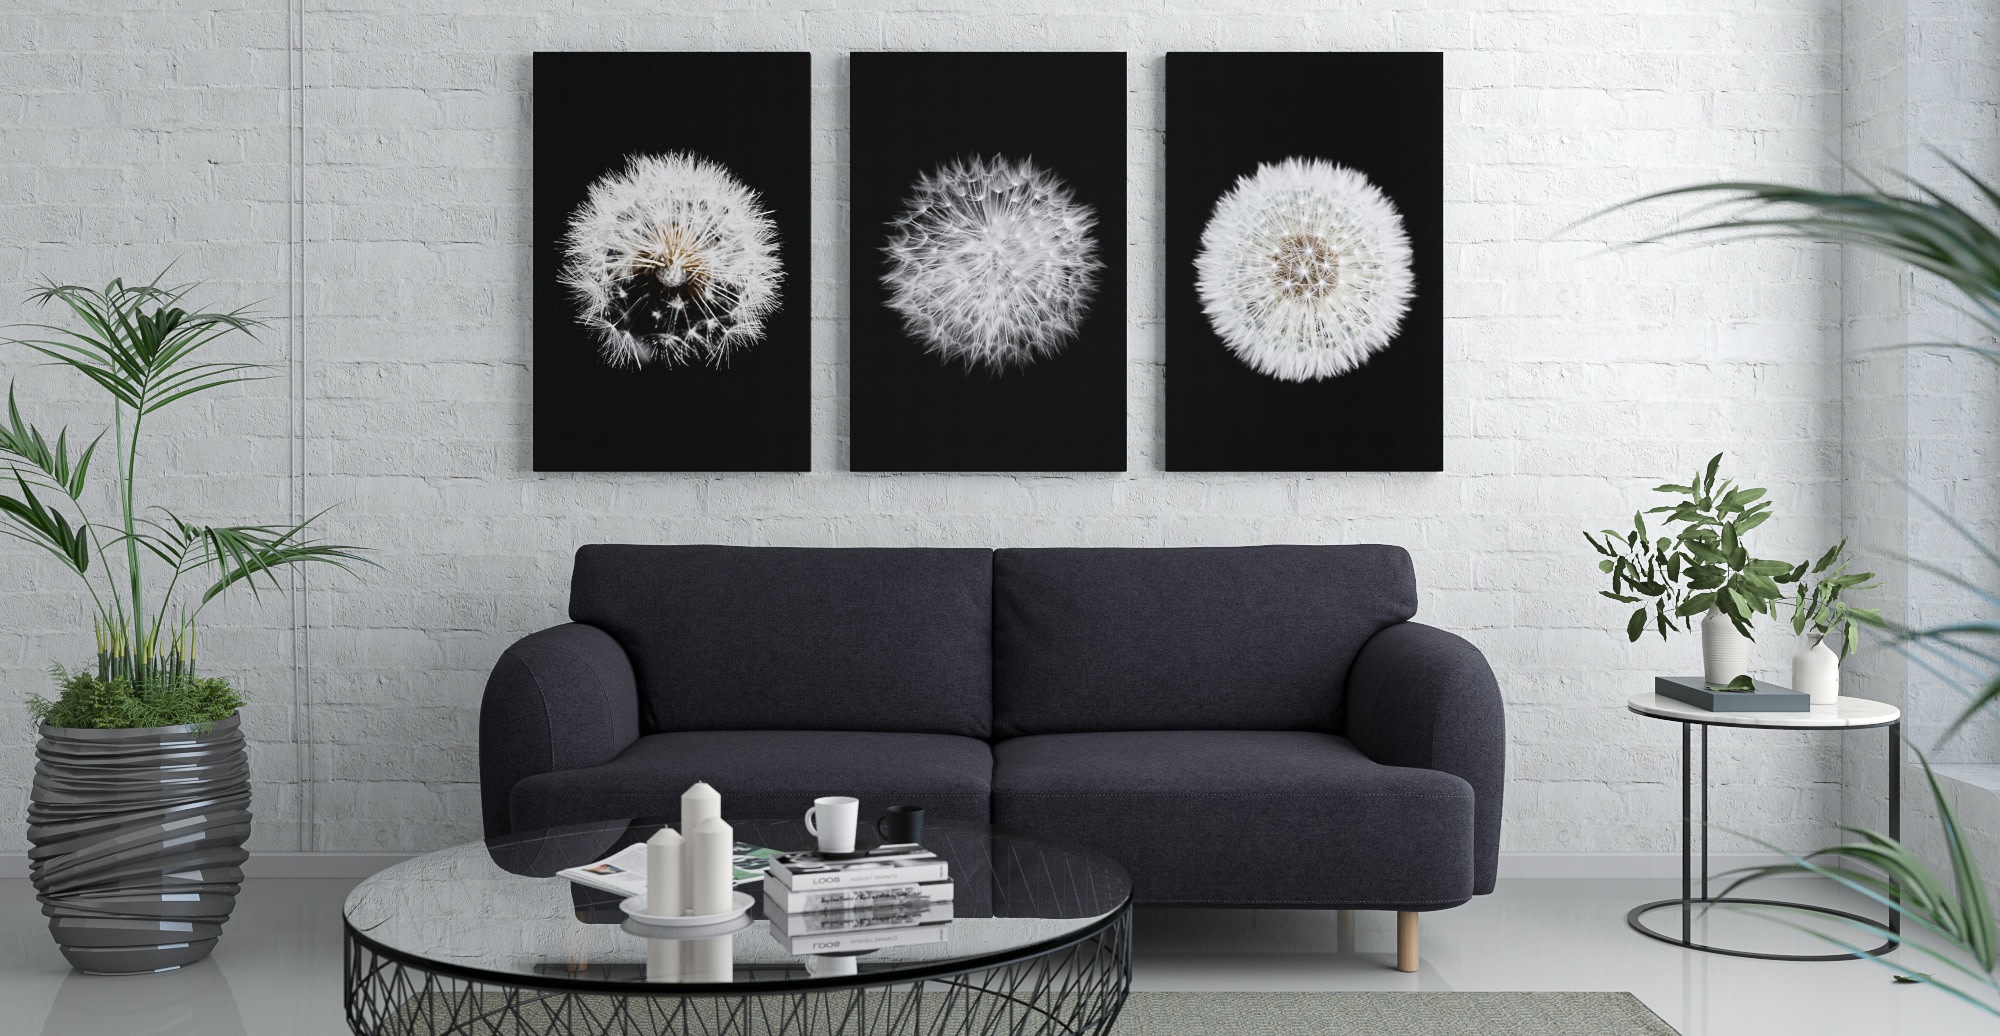 Wall Art Prints, Wall Art Prints – Adding Beauty to the Walls of the Home